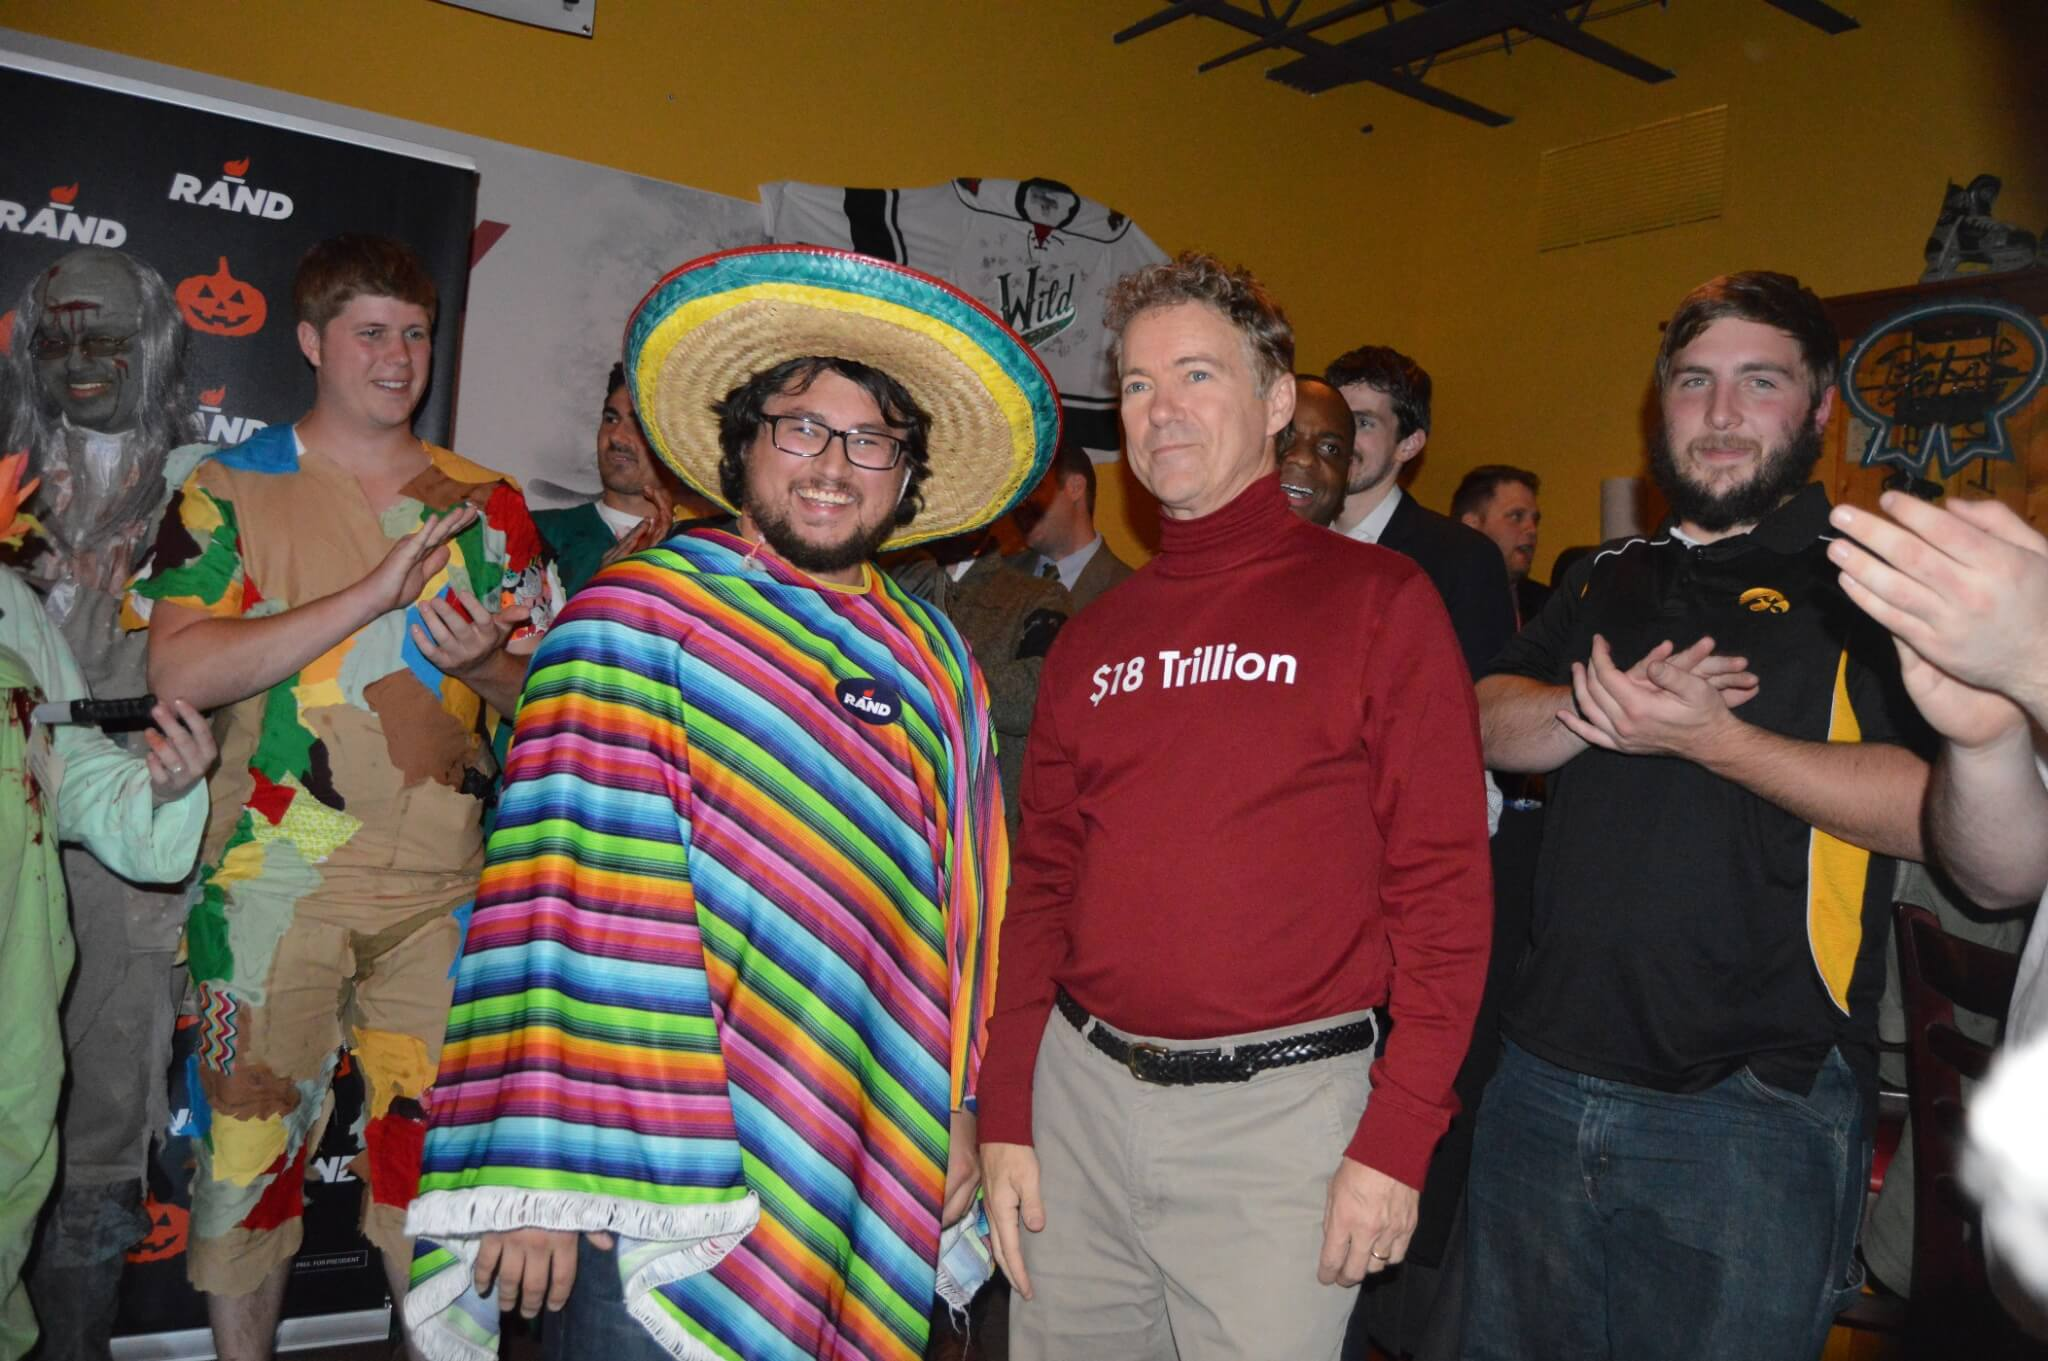 Photos: Iowa Republicans' Spooky (And Silly) Halloween Costumes ...